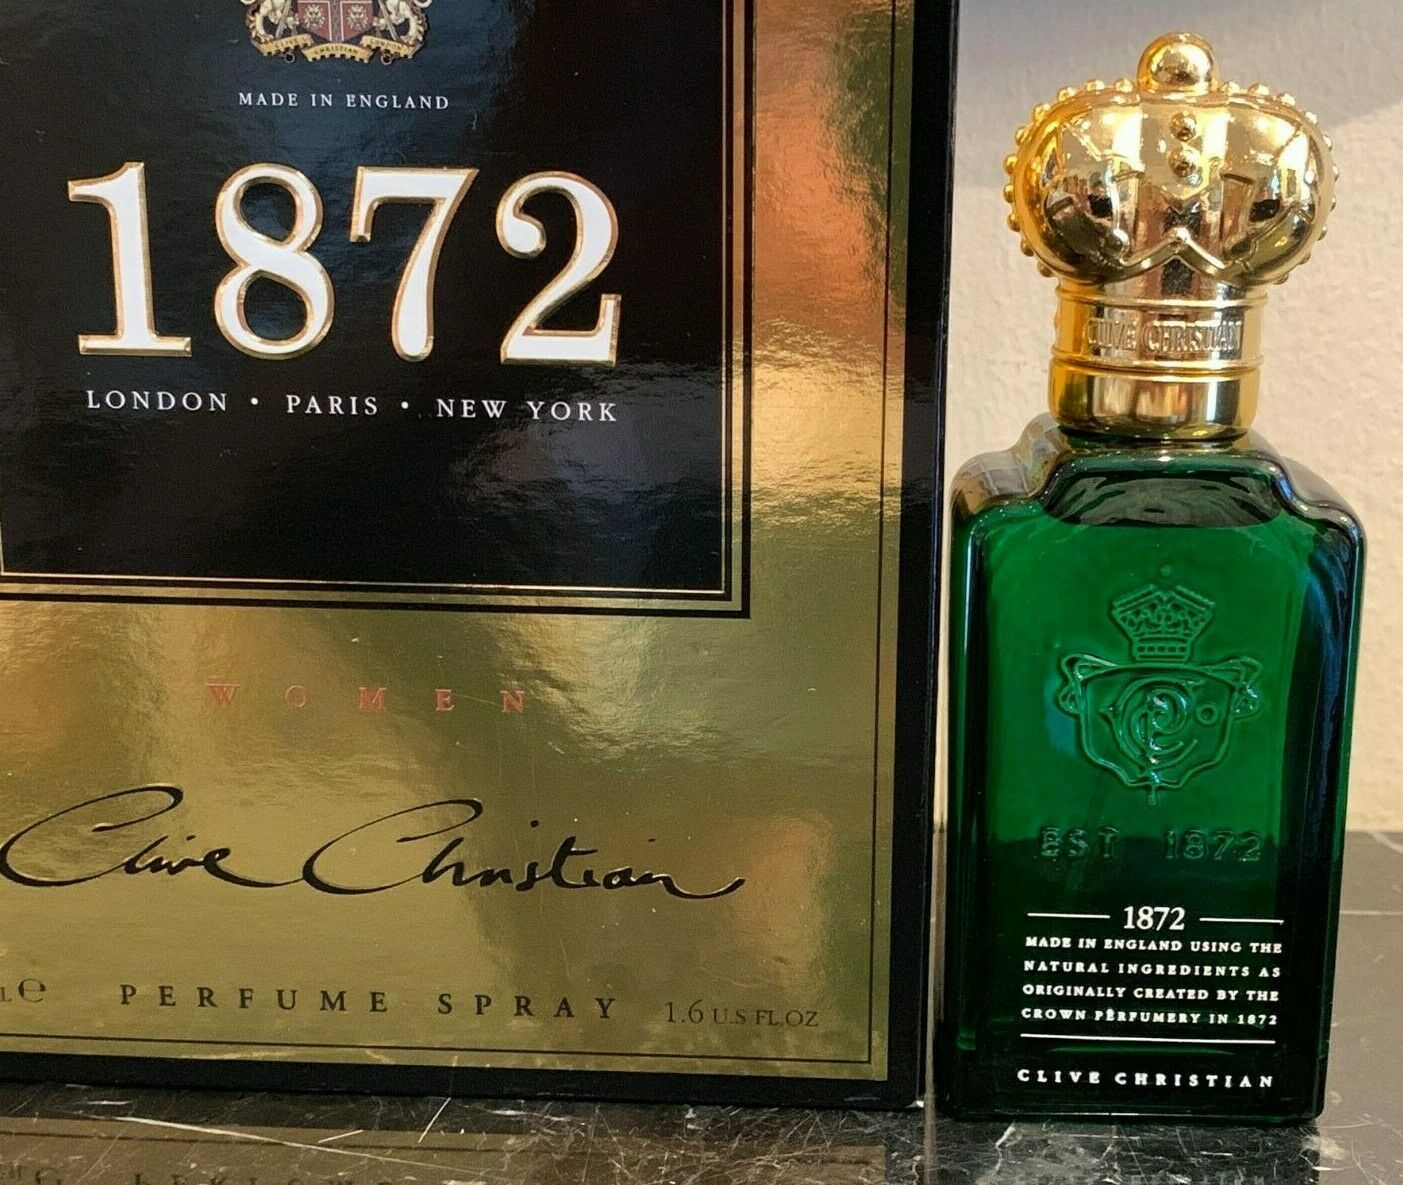 Primary image for Clive Christian 1872 Brand New Perfume Spray for Women 1.6 FL OZ / 50 ML